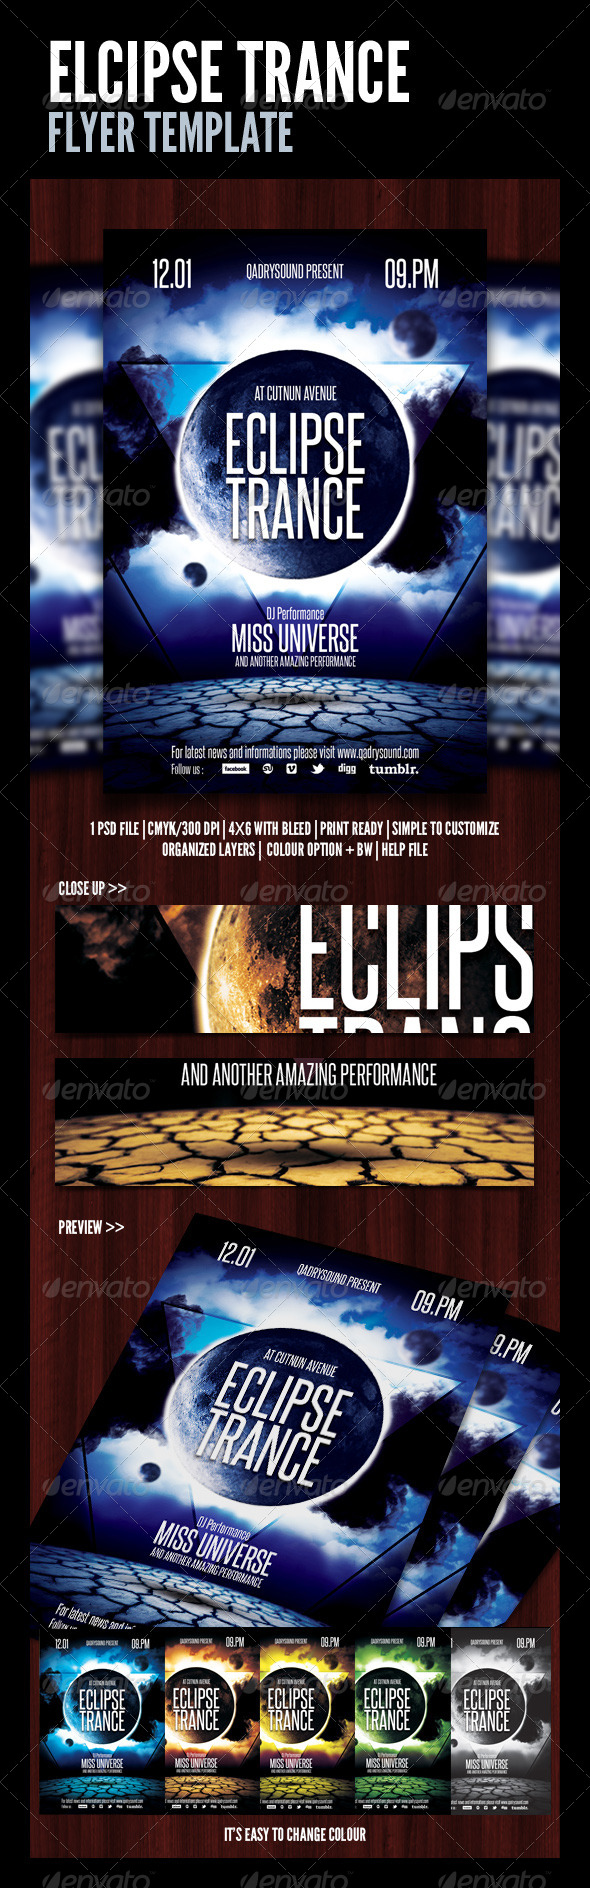 Eclips Trance Flyer/Poster - Clubs & Parties Events